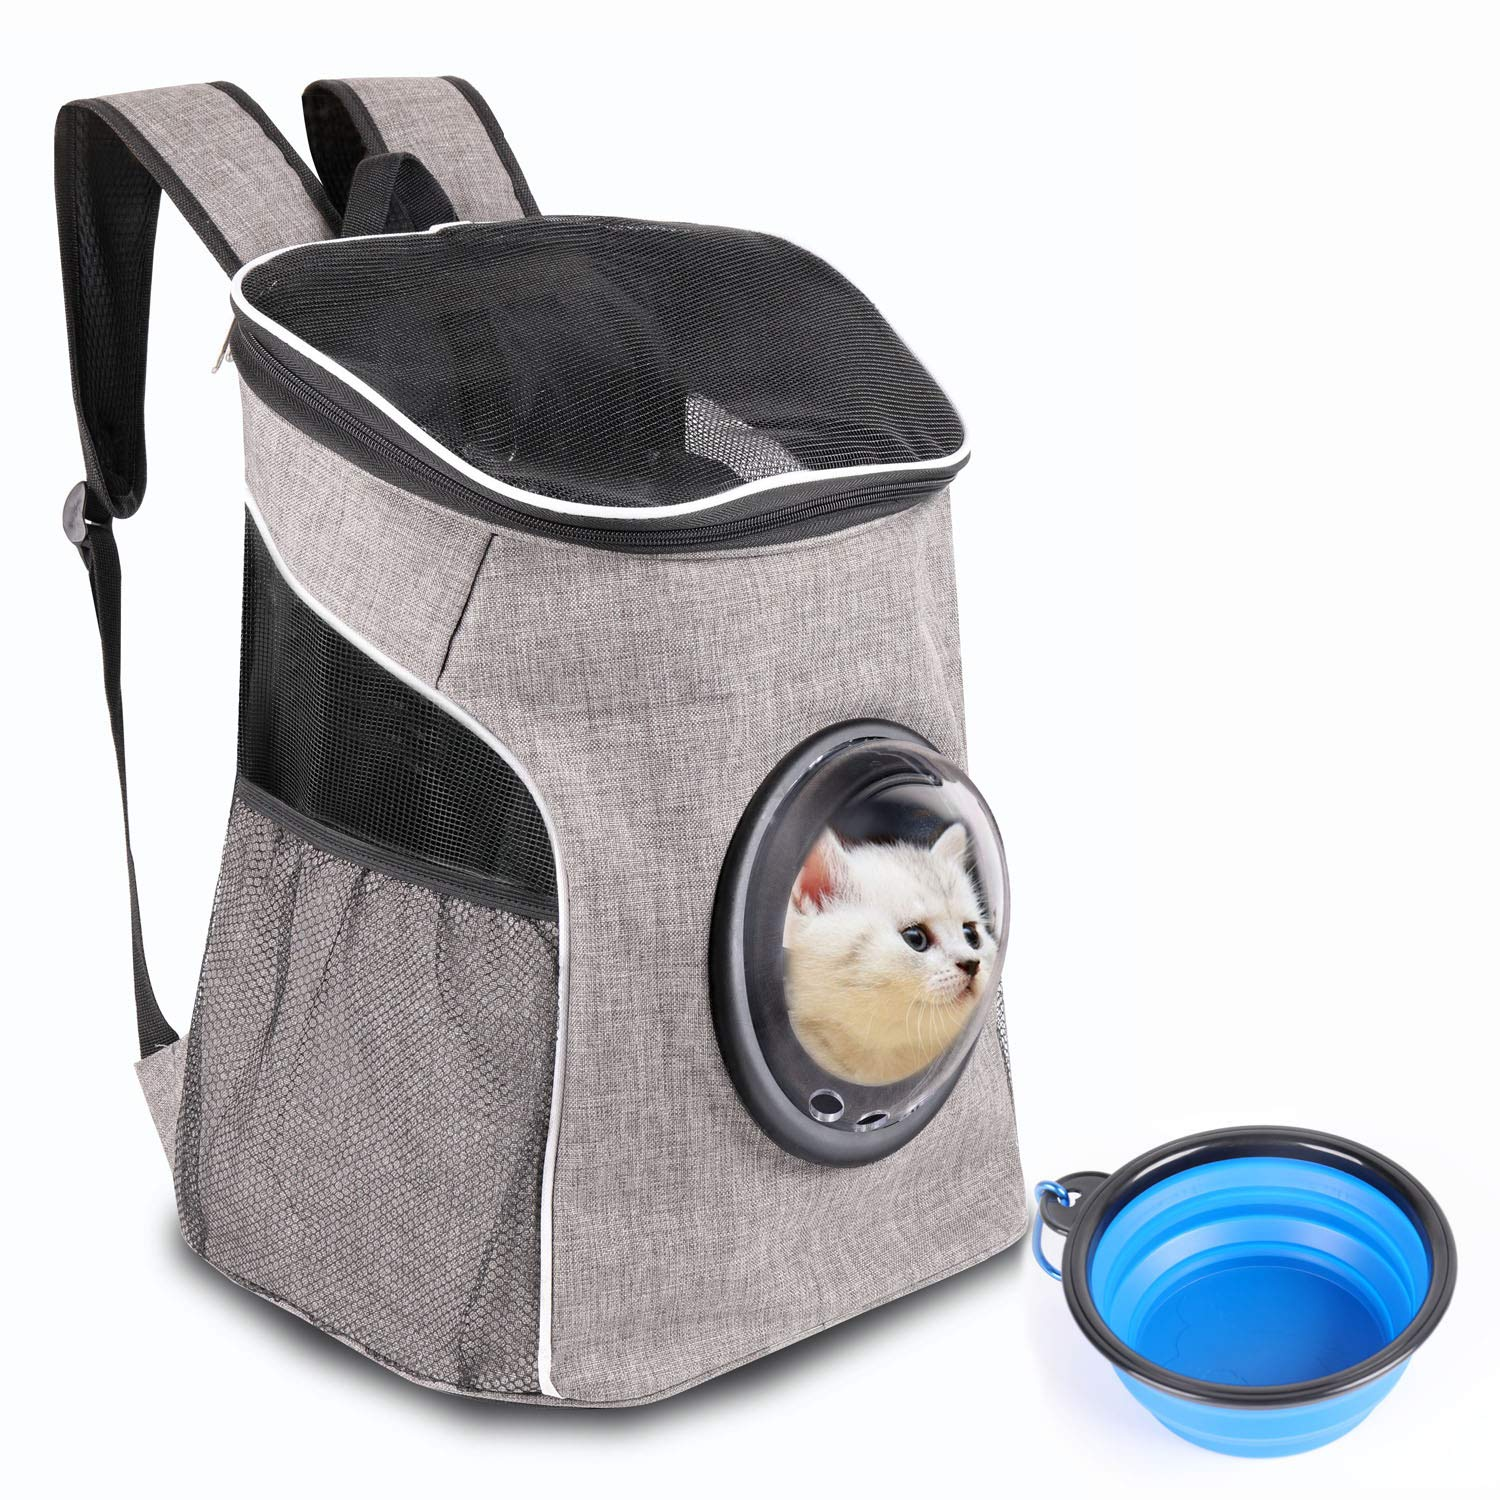 Pet Carrier Backpack Cat Backpack Breathable for Small Medium Dogs and Cats, Deluxe Pet Carrier Bag with Bubble Window, Mesh Ventilation and Safety Features for Traveling, Hiking, Camping, Walking